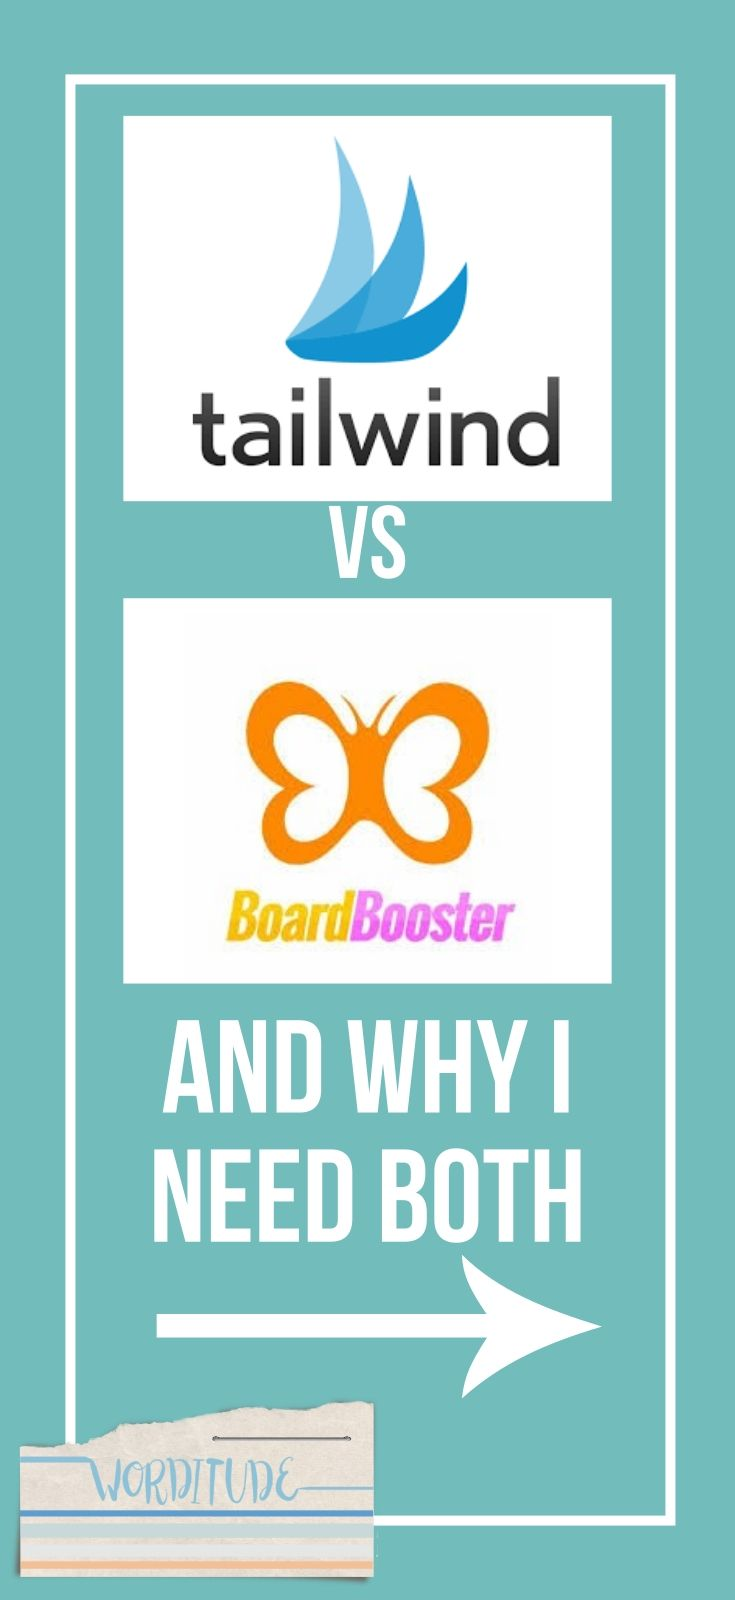 Tailwind vs BoardBooster | And why I can't manage without them. Pinterest scheduling tools, tips and ideas for bloggers, entrepreneurs, solopreneurs and small business owners. Pinning made easy.